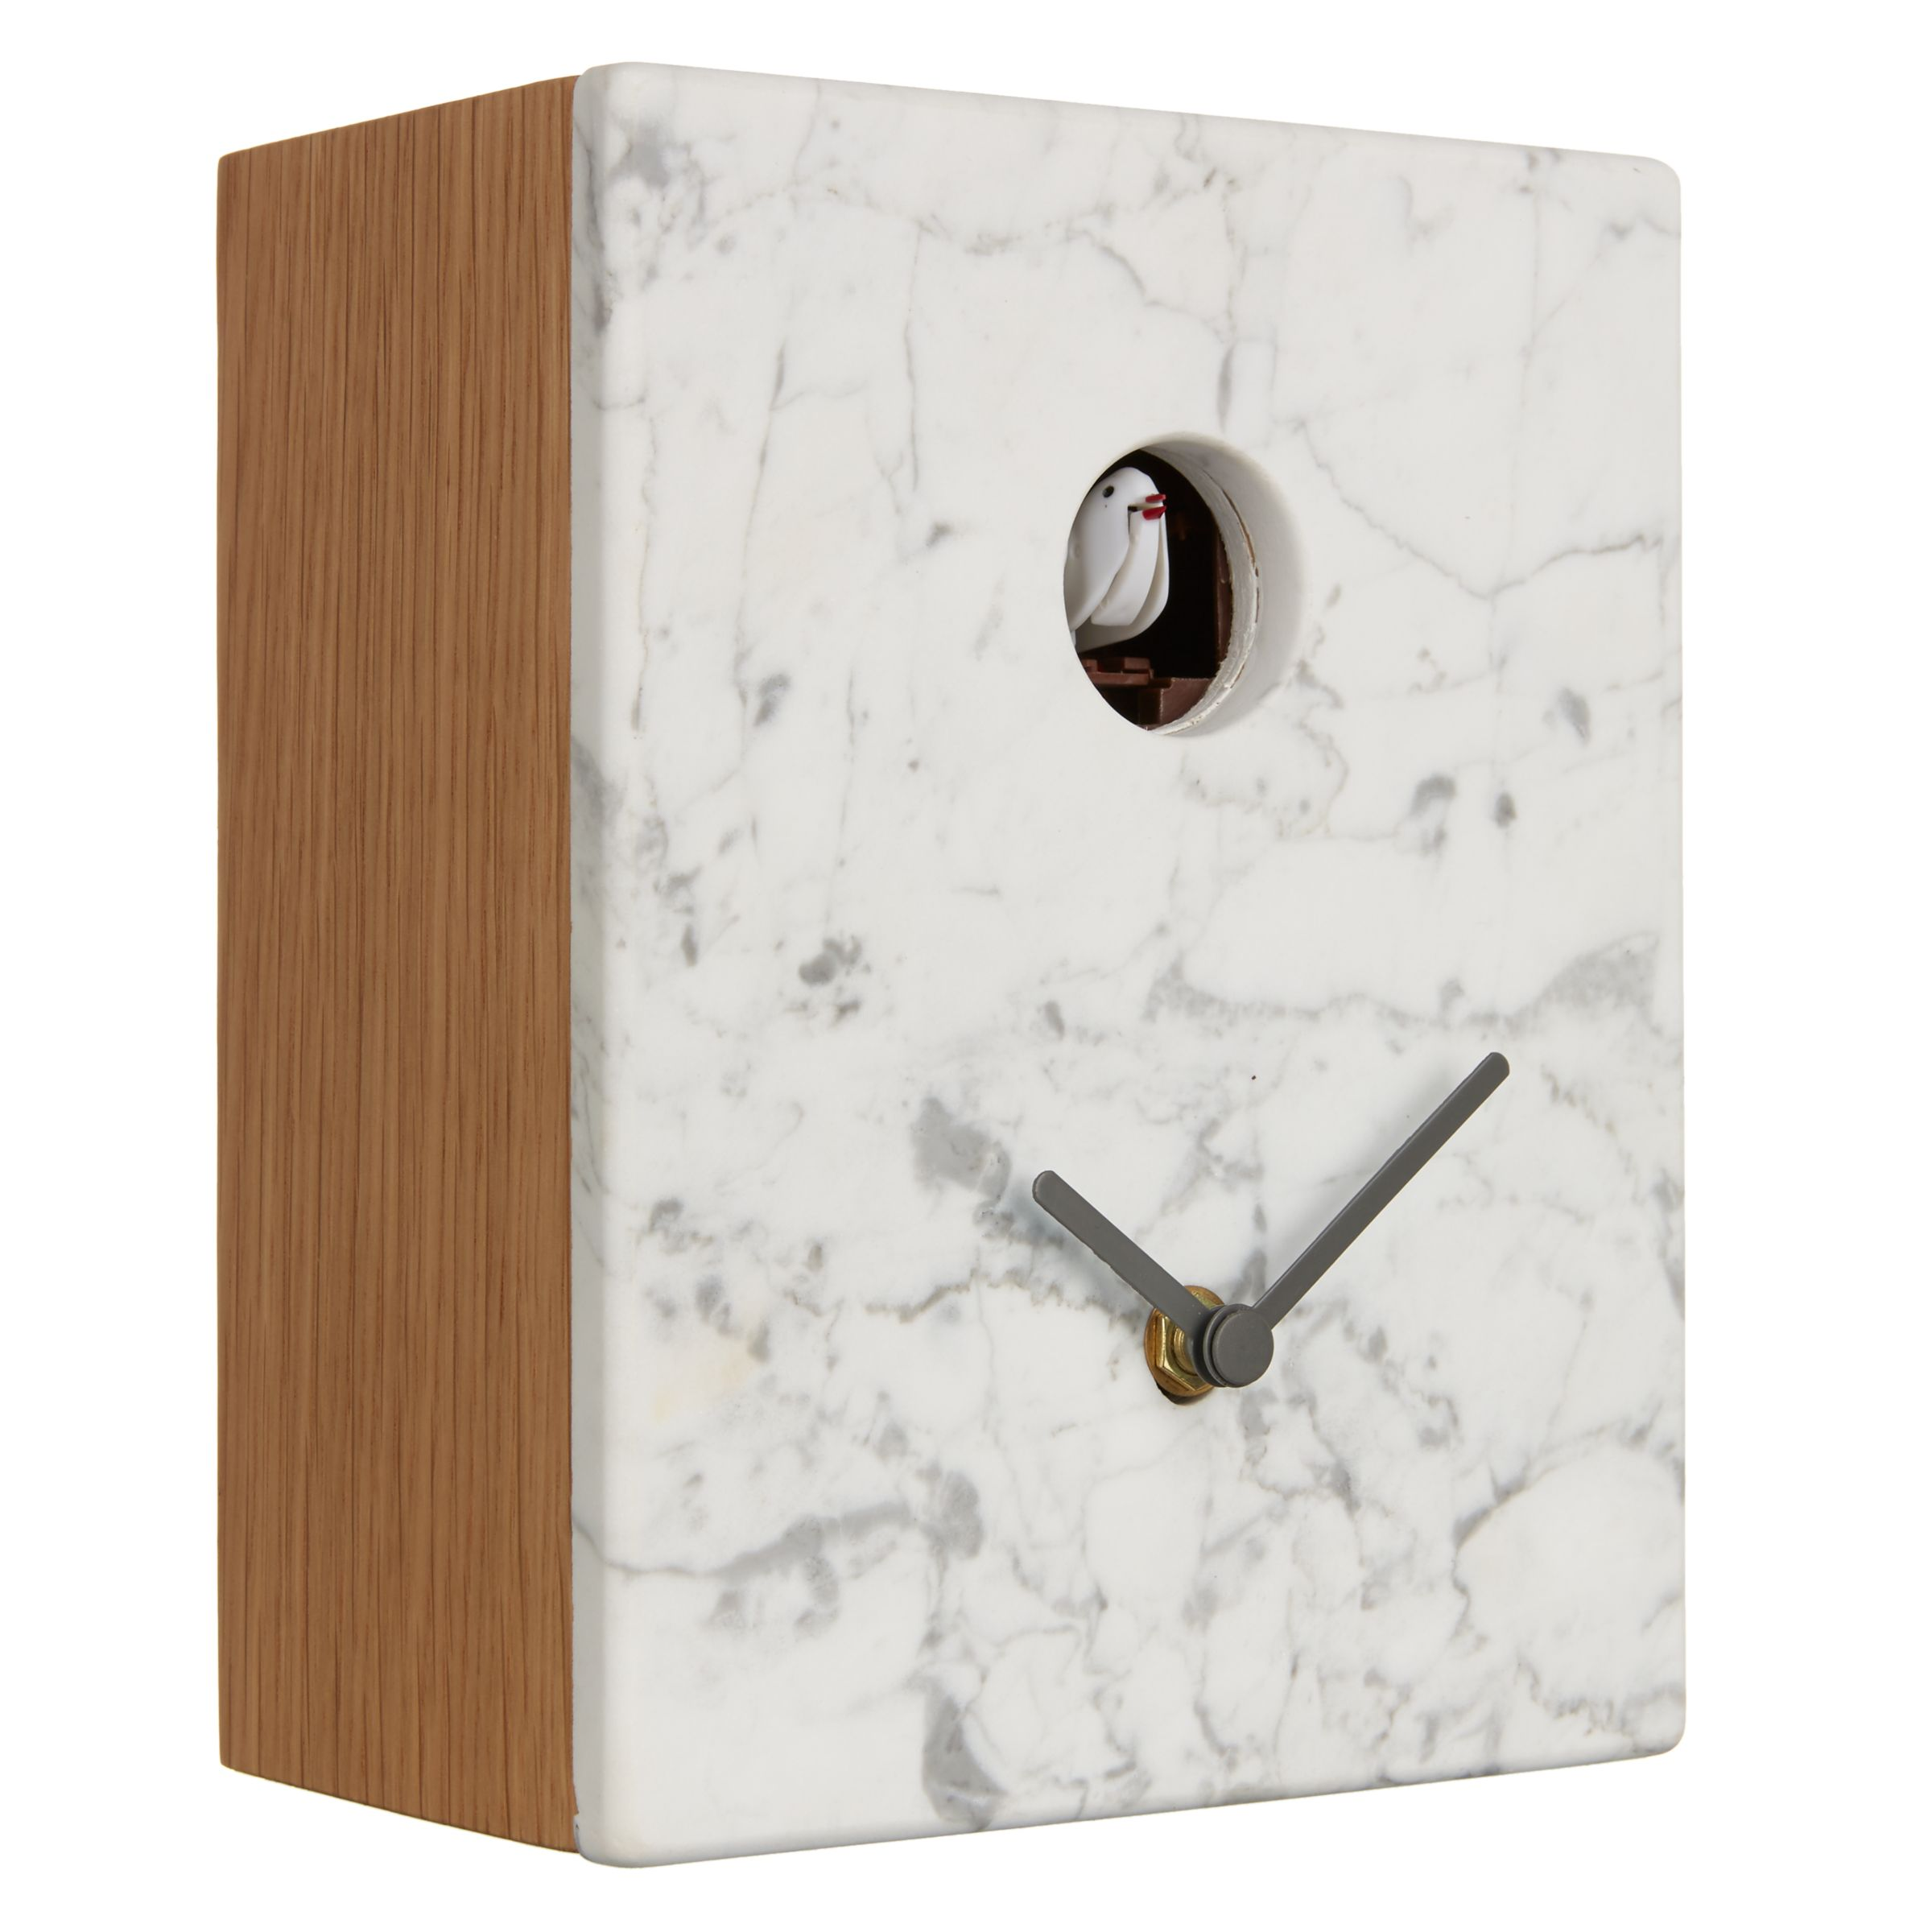 Diamantini & Domeniconi Diamantini & Domeniconi Portobello Marble Cuckoo Clock, 21 x 16cm